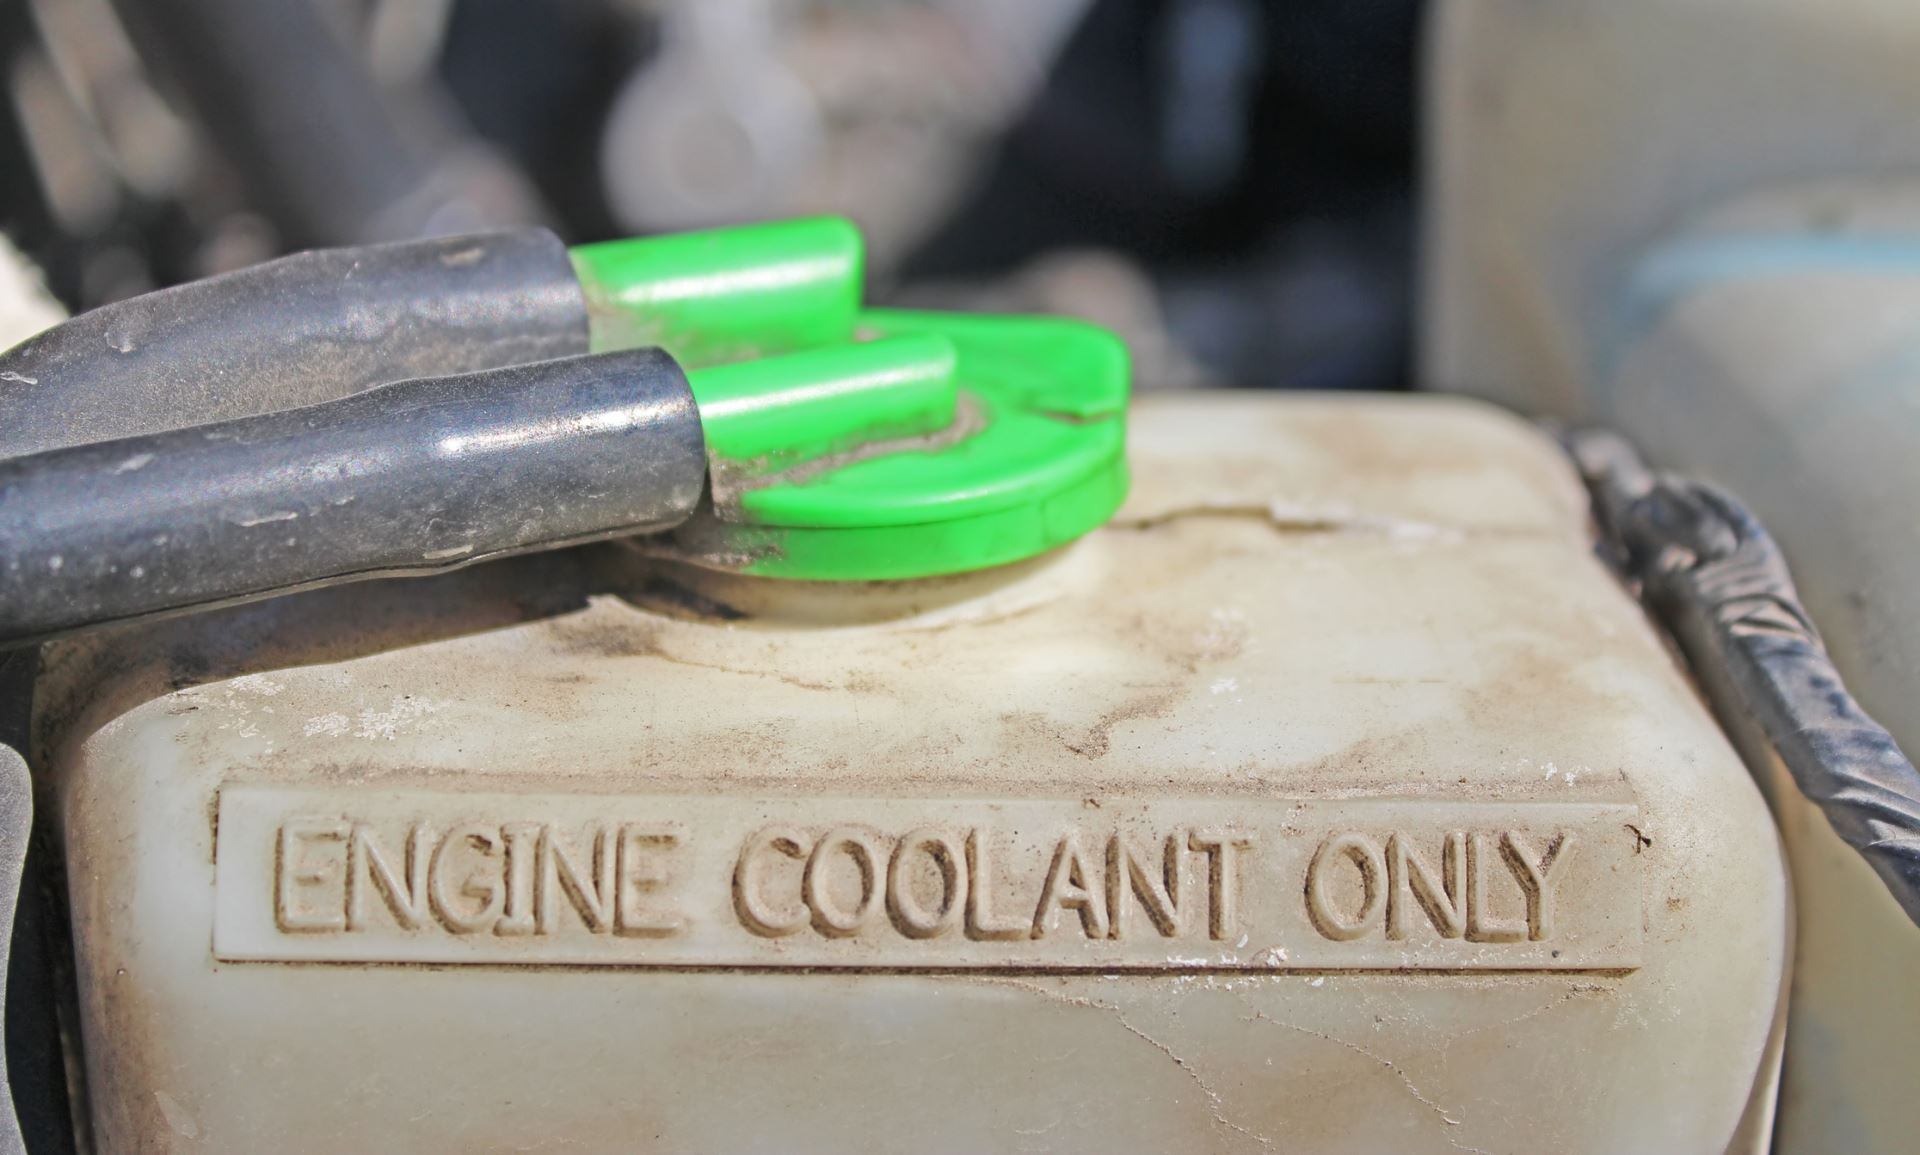 Stalls can be related to coolant loss